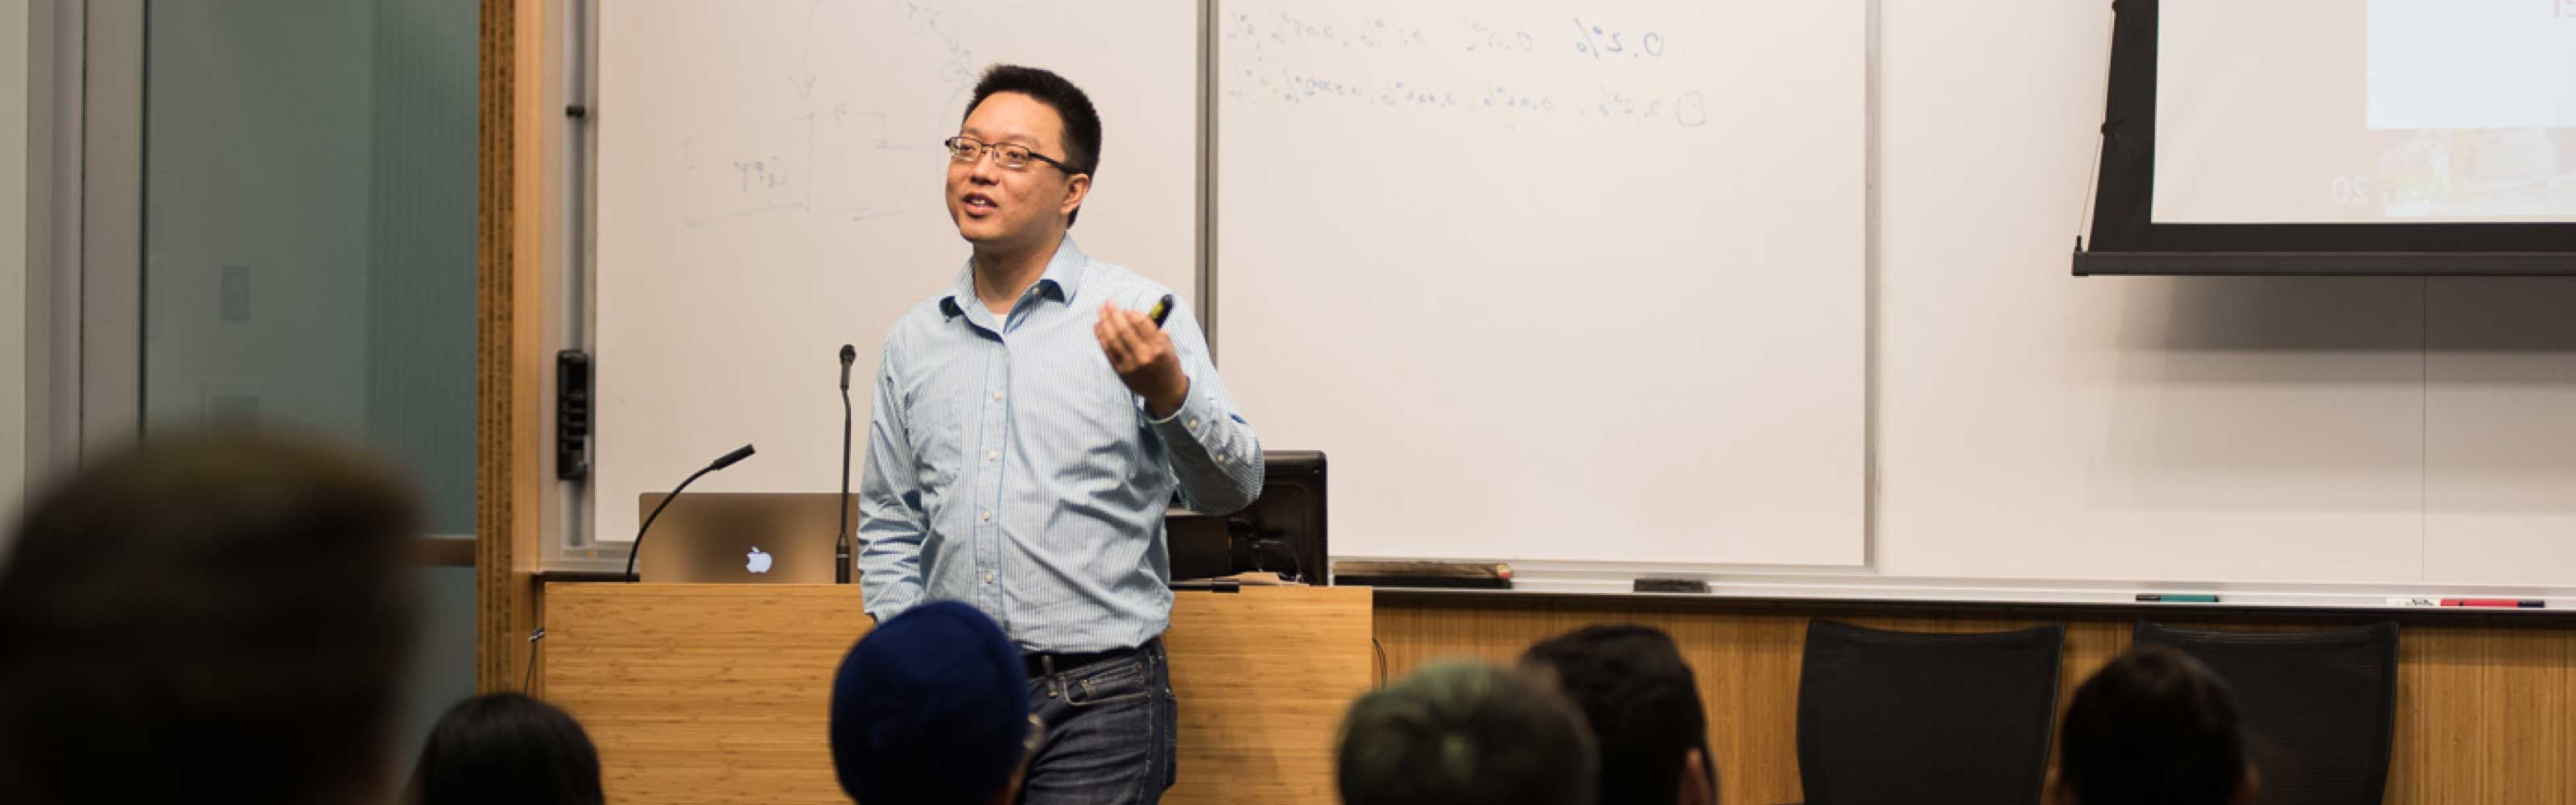 "Professor Lei ""Stanley"" Qi dialoging with his students in class."